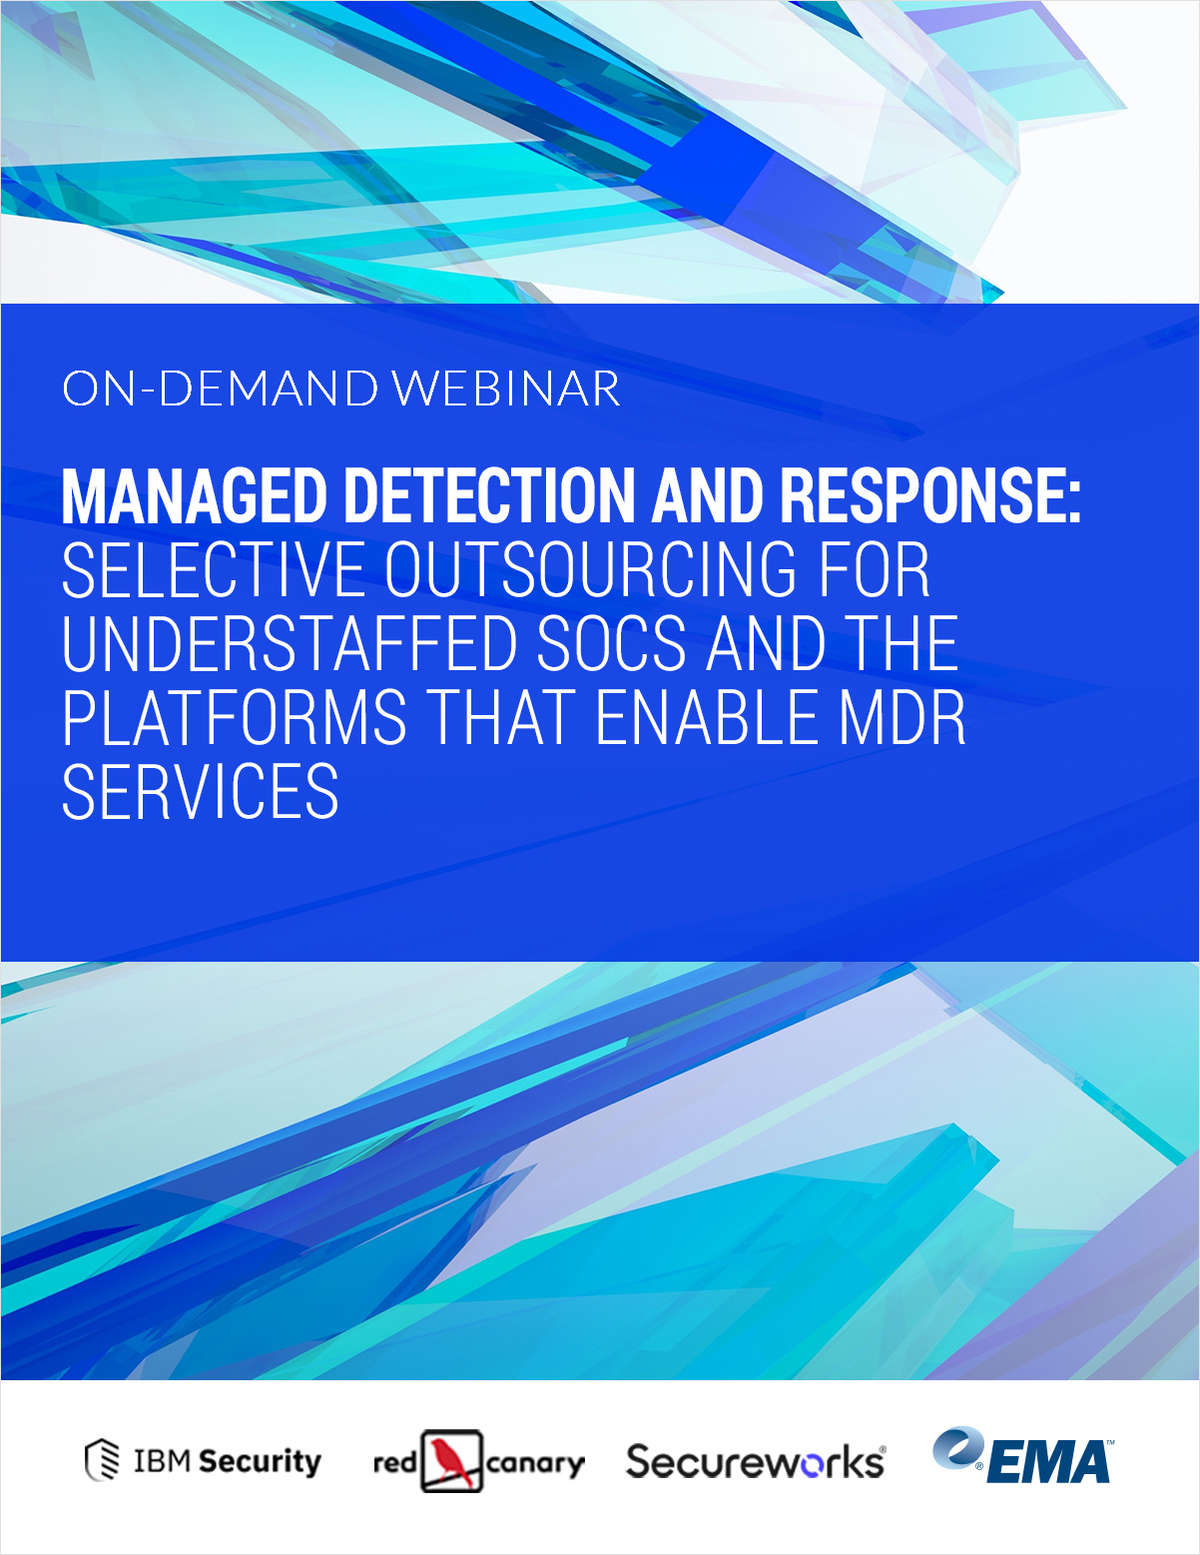 ON-DEMAND RESEARCH WEBINAR: Managed Detection and Response